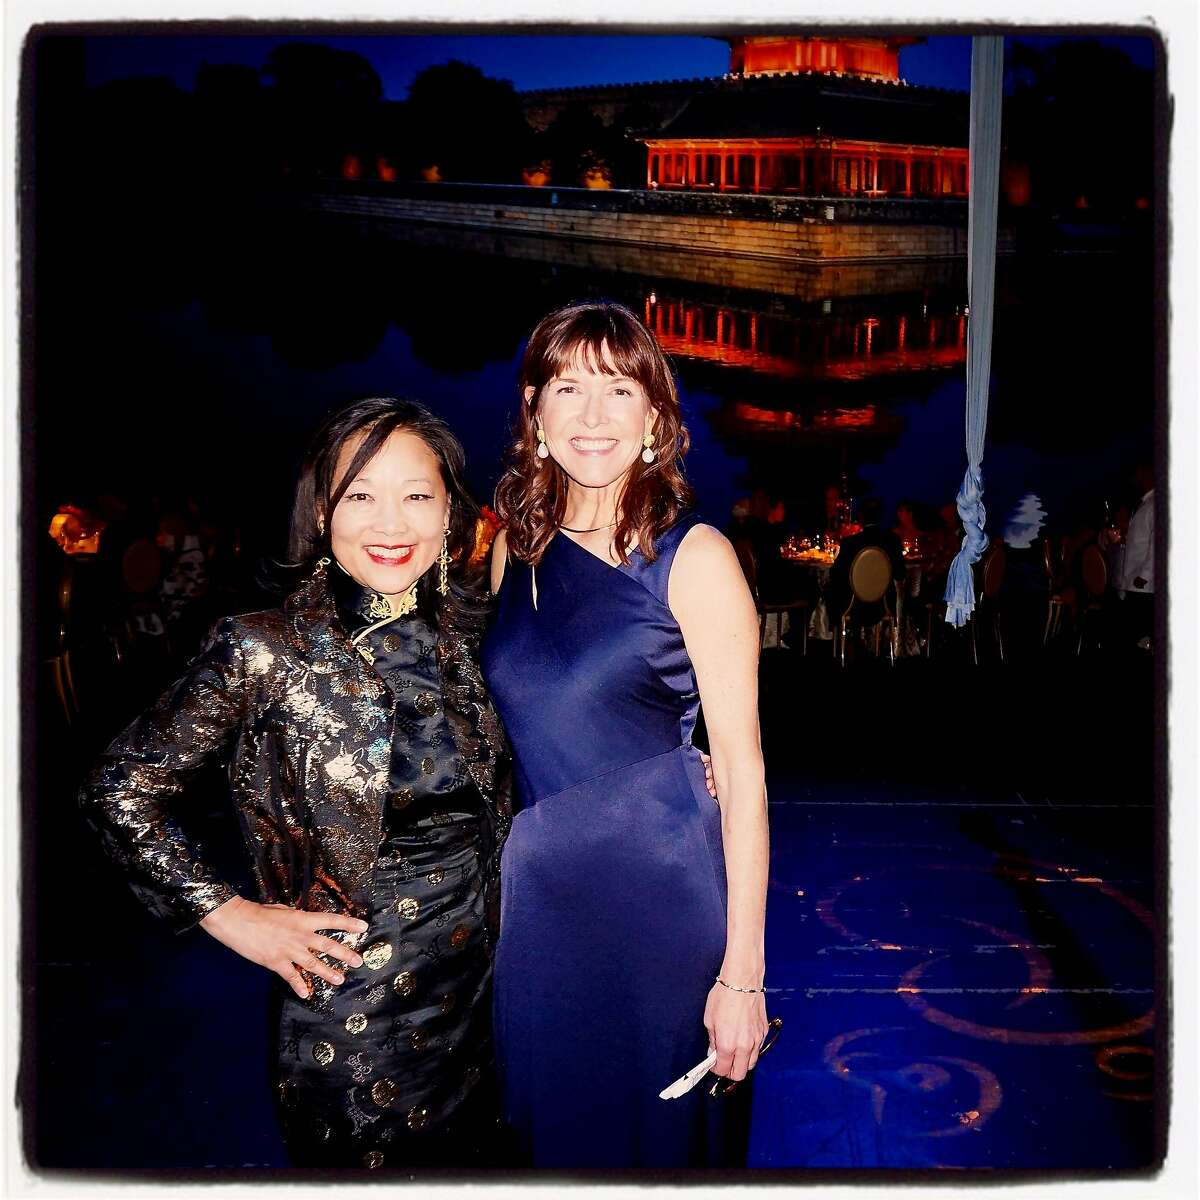 S.F. Symphony Chinese New Year Concert & Imperial Dinner chairwomen Patricia Lee-Hoffman (left) and Leigh Wasson celebrate Year of the Monkey at Davies Hall. Feb 2016